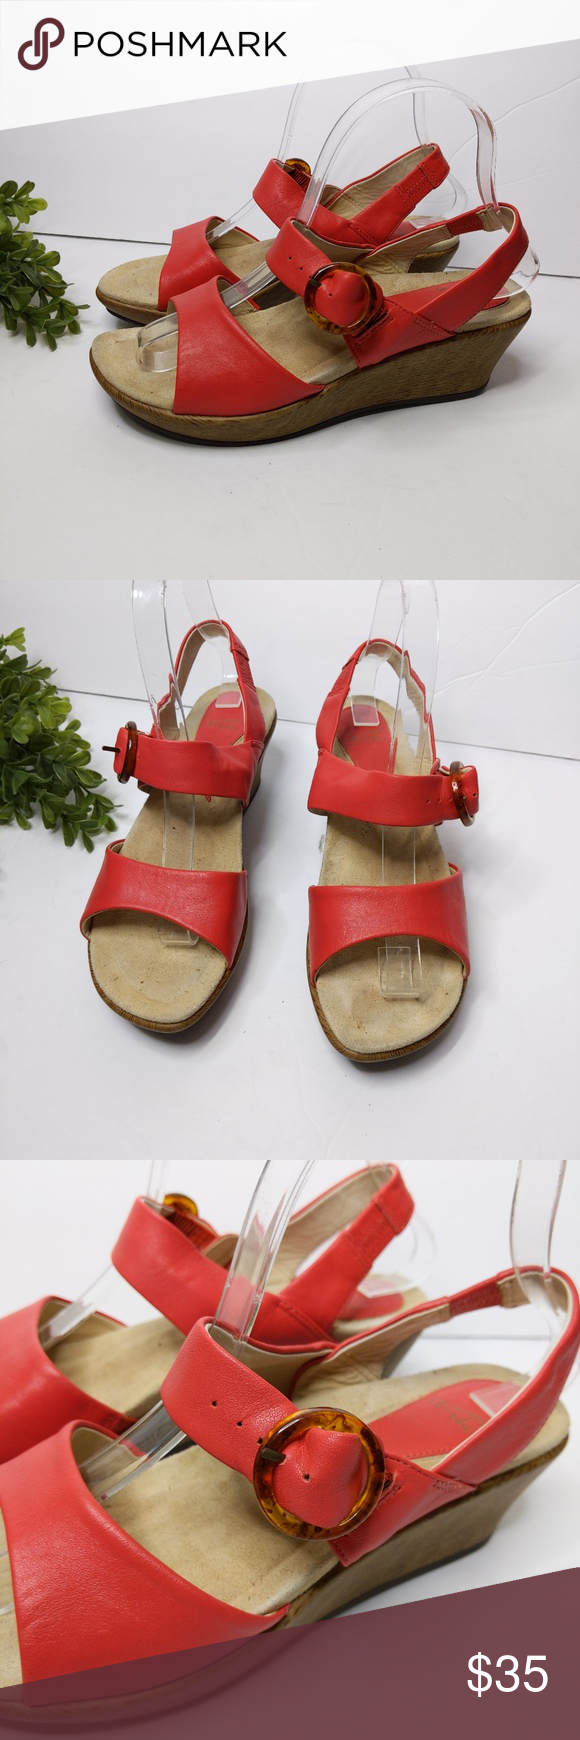 Dansko Wedge Sandals 37 Coral Ankle Strap Low Heel Dansko Wedge Sandals 37 Coral Ankle Strap Low Heel 6.5 7 Comfort Leather Upper  Dansko 37 approximately 6.5/7  Preowned, good condition. Dansko Shoes Wedges #lowwedgesandals